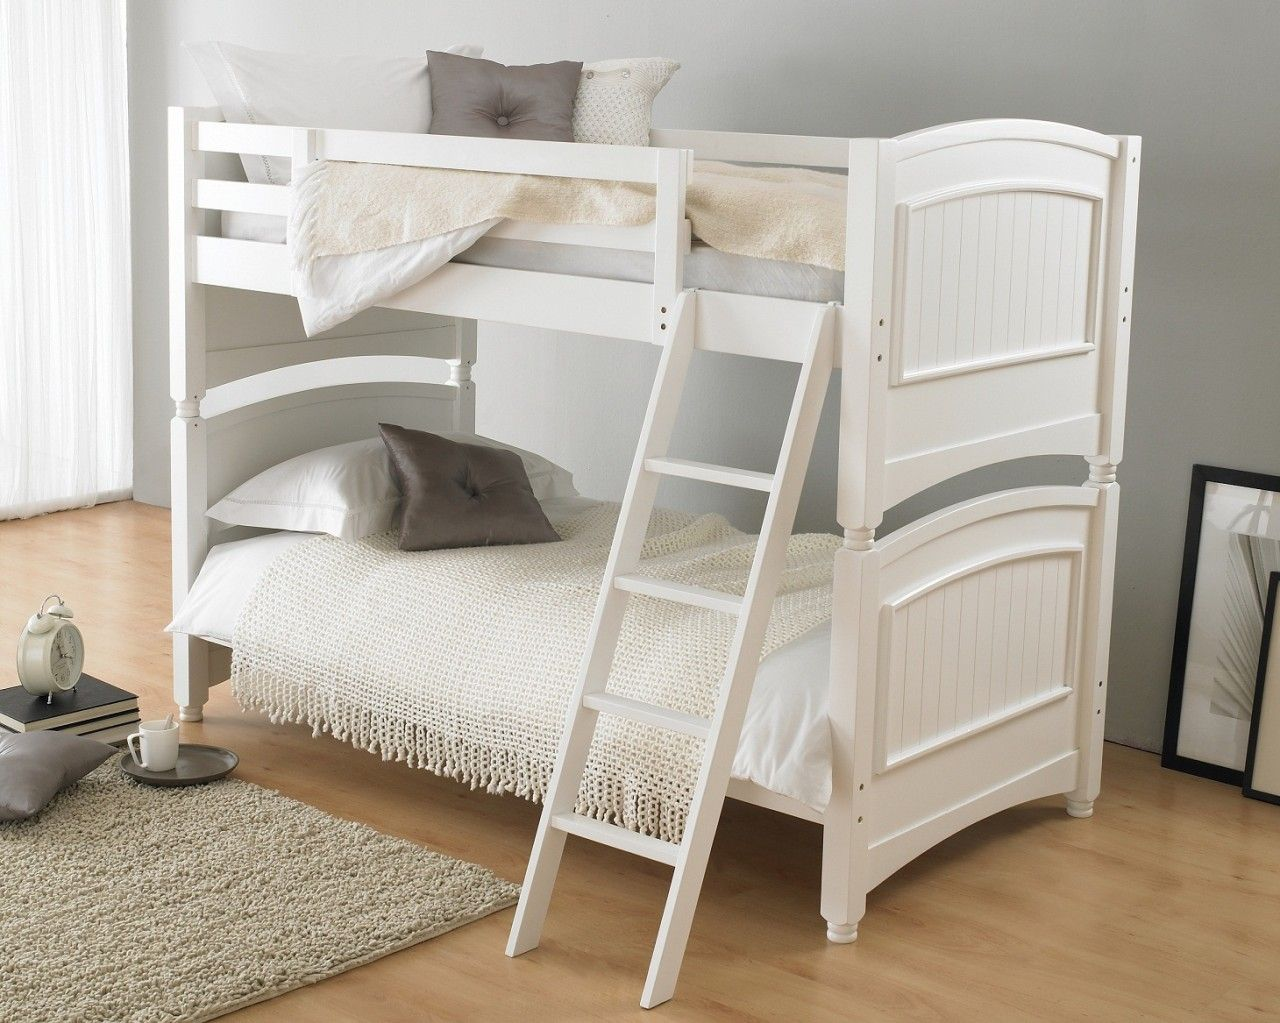 Hyder Colonial White Hardwood Bunk Bed Wooden bunk beds